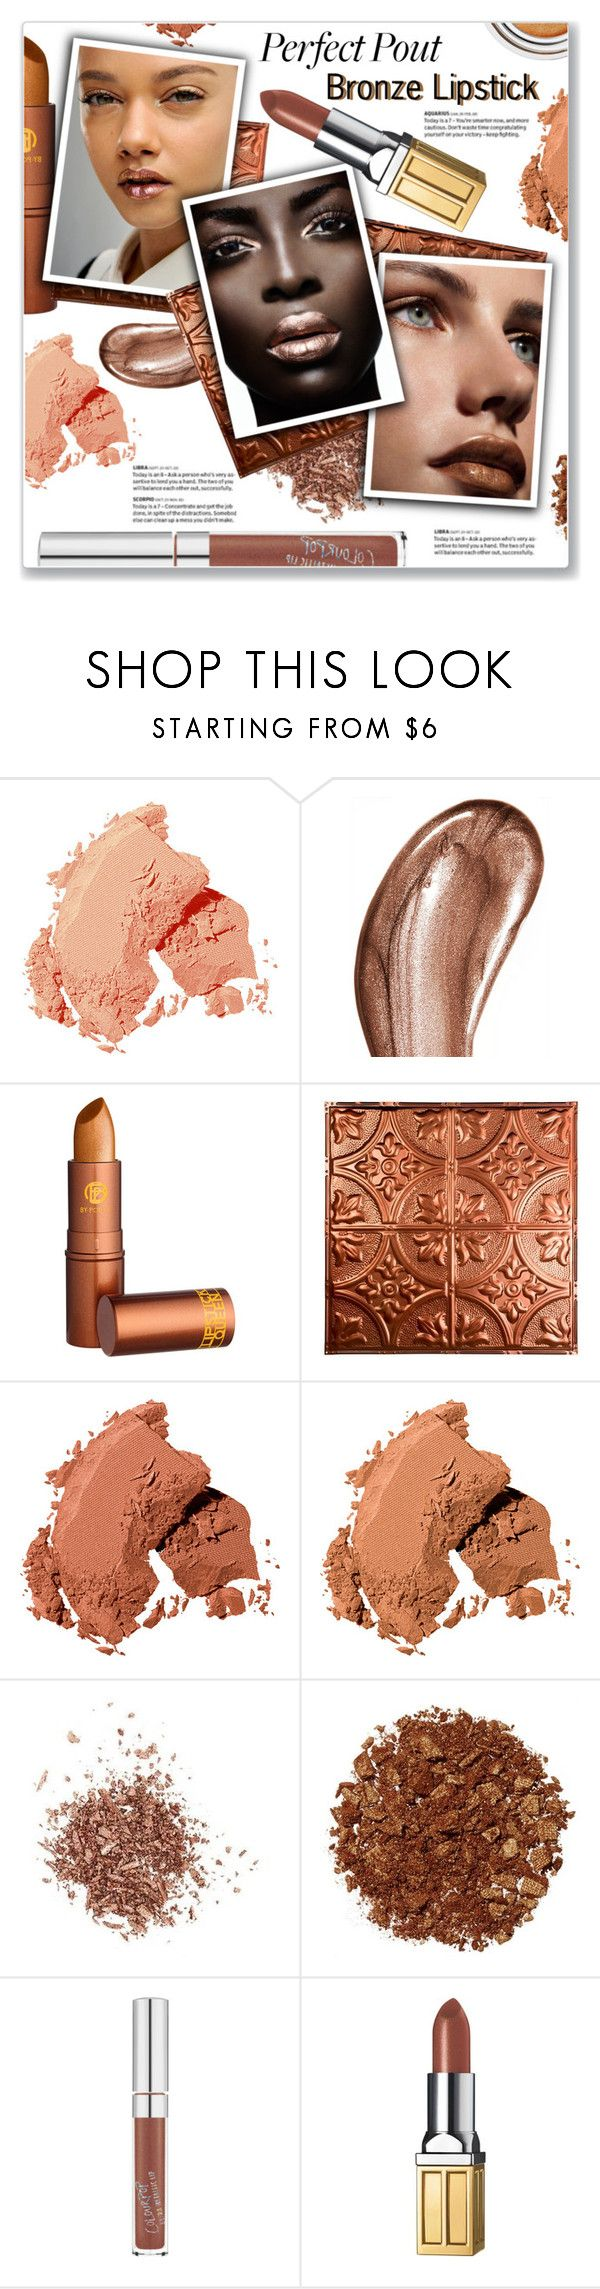 """""""Perfect Pout: Bronze Lipstick"""" by kellylynne68 ❤ liked on Polyvore featuring beauty, Bobbi Brown Cosmetics, Laura Mercier, Lipstick Queen, Christian Dior, Givenchy, Topshop, Illamasqua and Elizabeth Arden"""